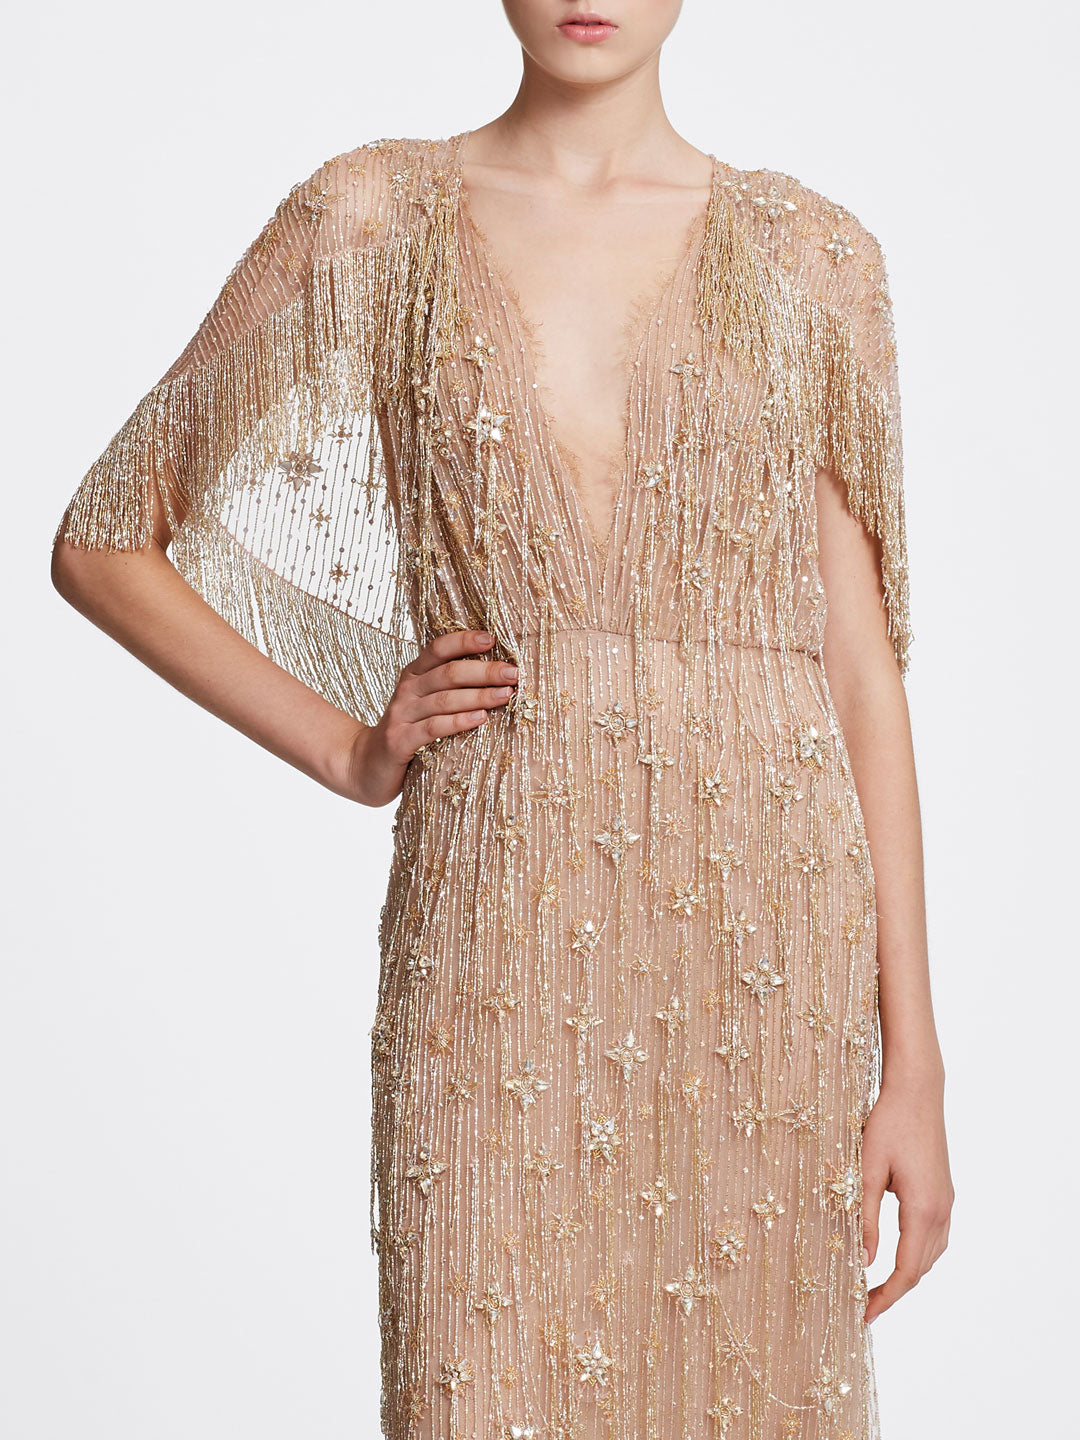 Crystal Fringe Dress